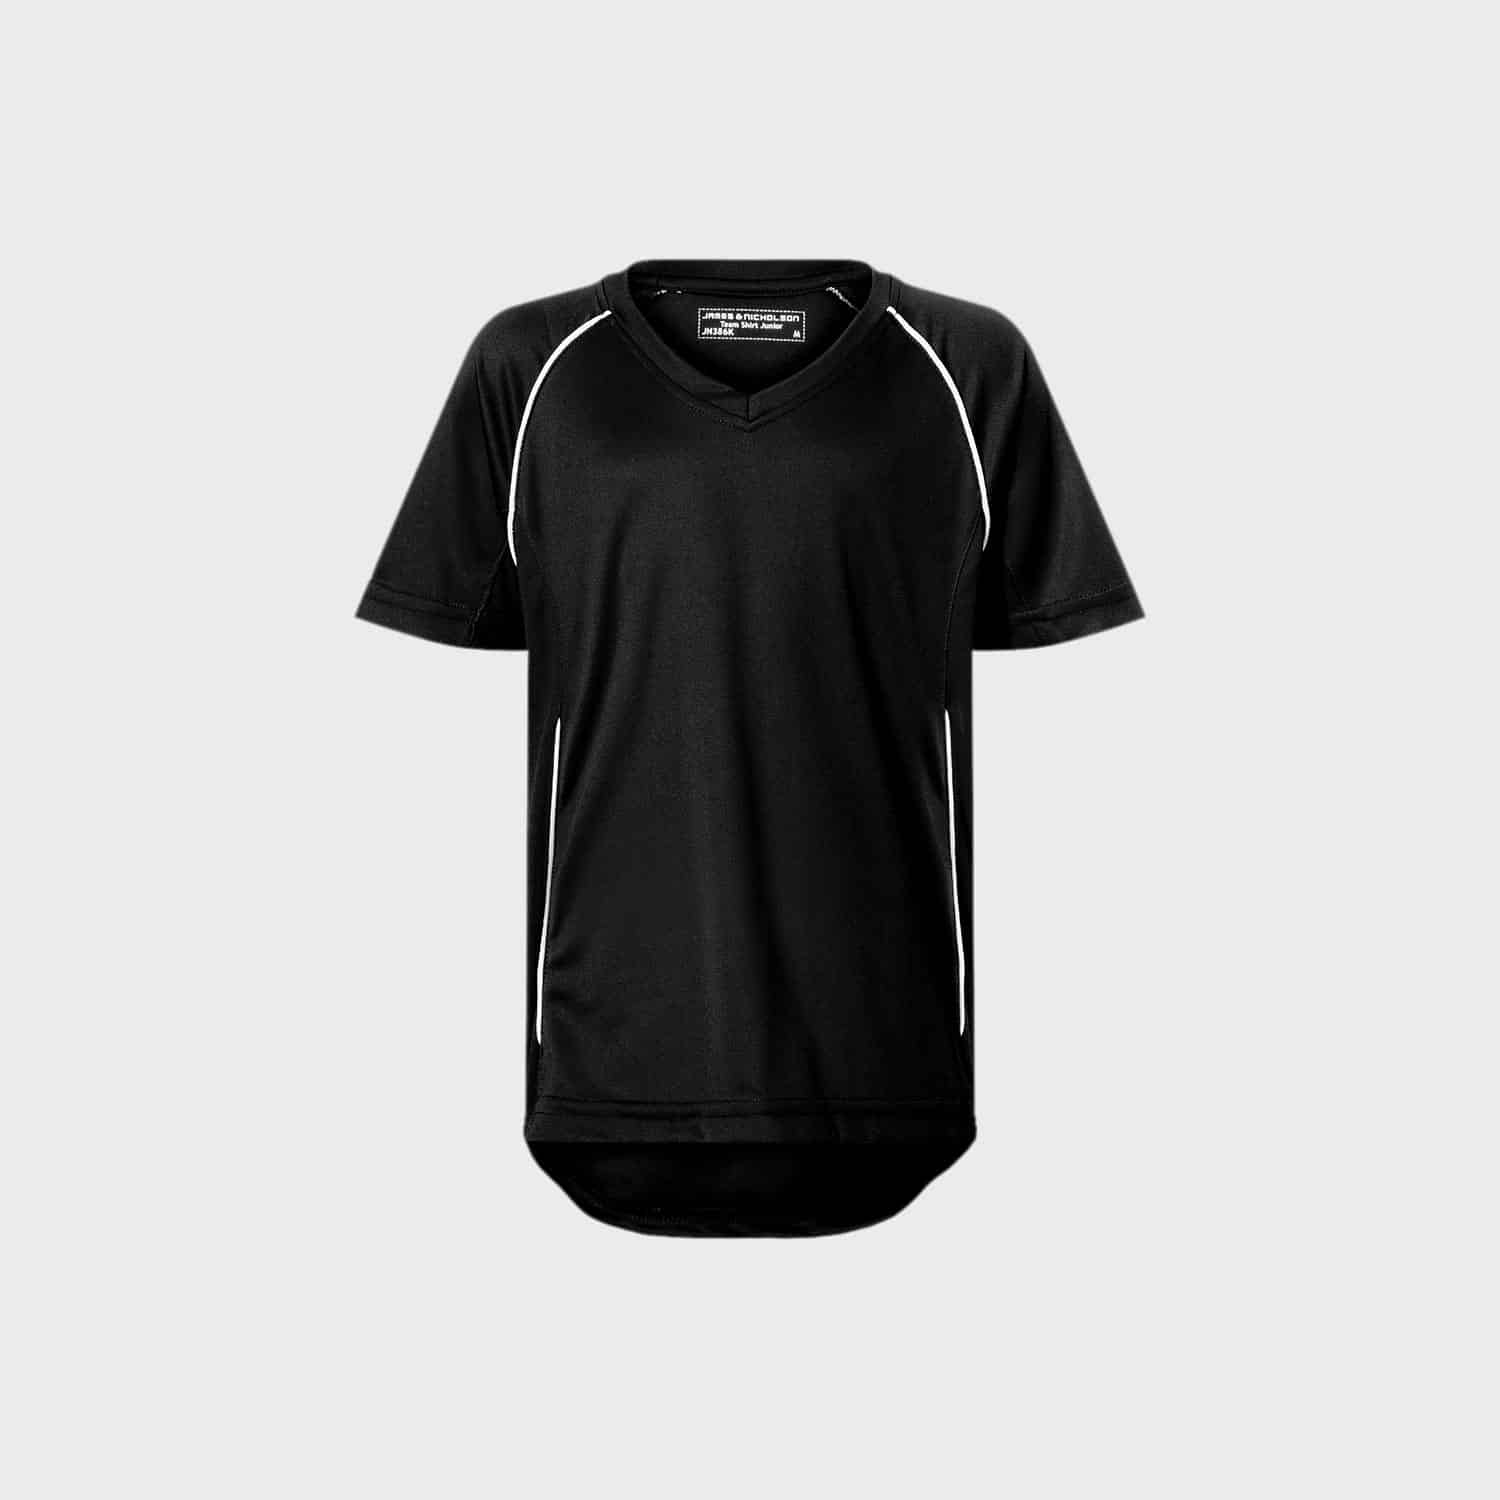 sportshirt-mannschafts-t-shirt-unisex-black-white-kaufen-besticken_stickmanufaktur